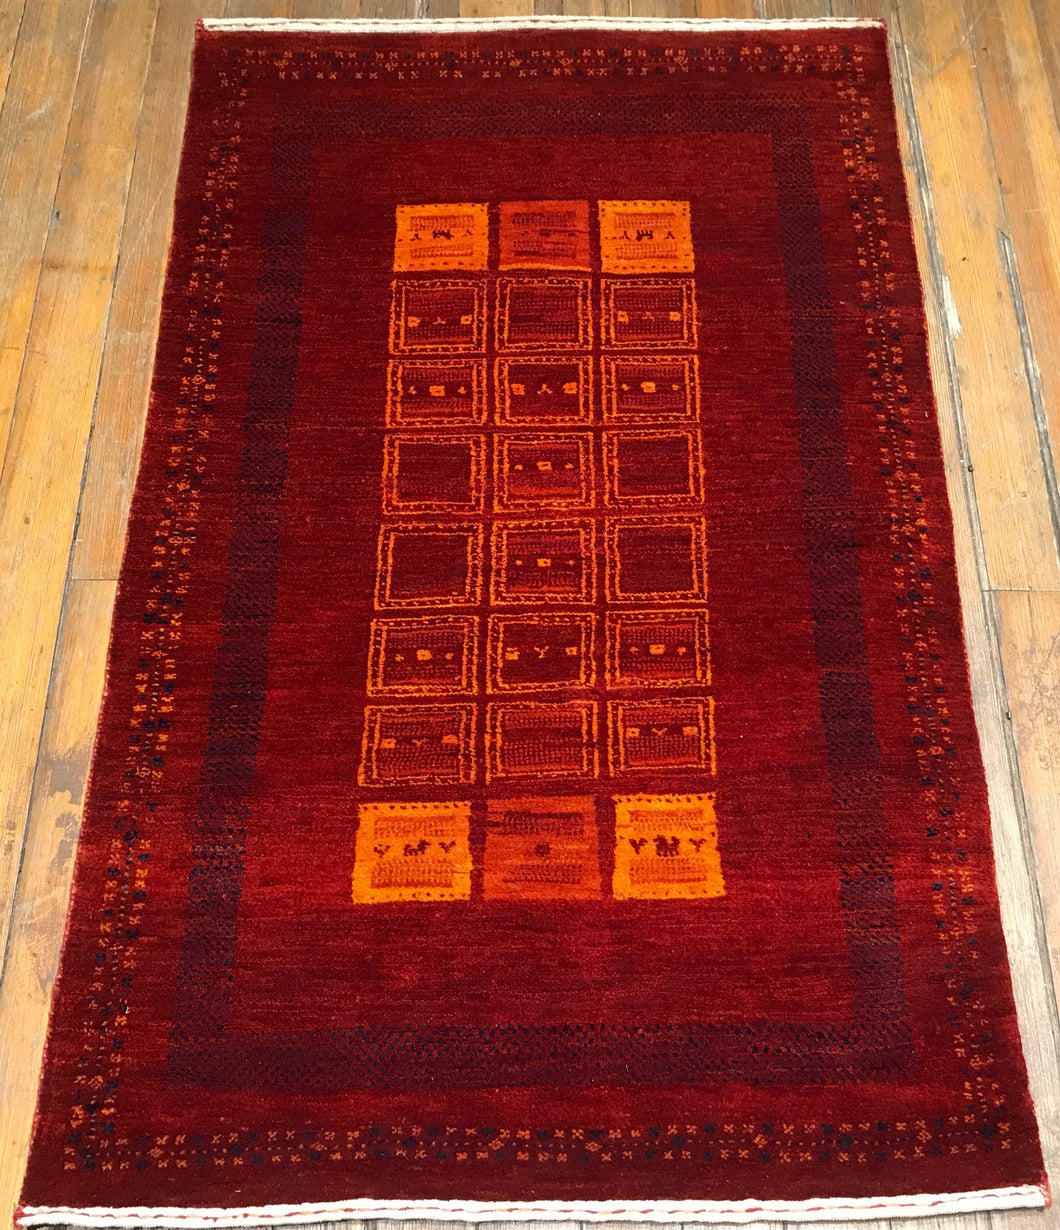 Arts & Crafts Rug. 2'.8